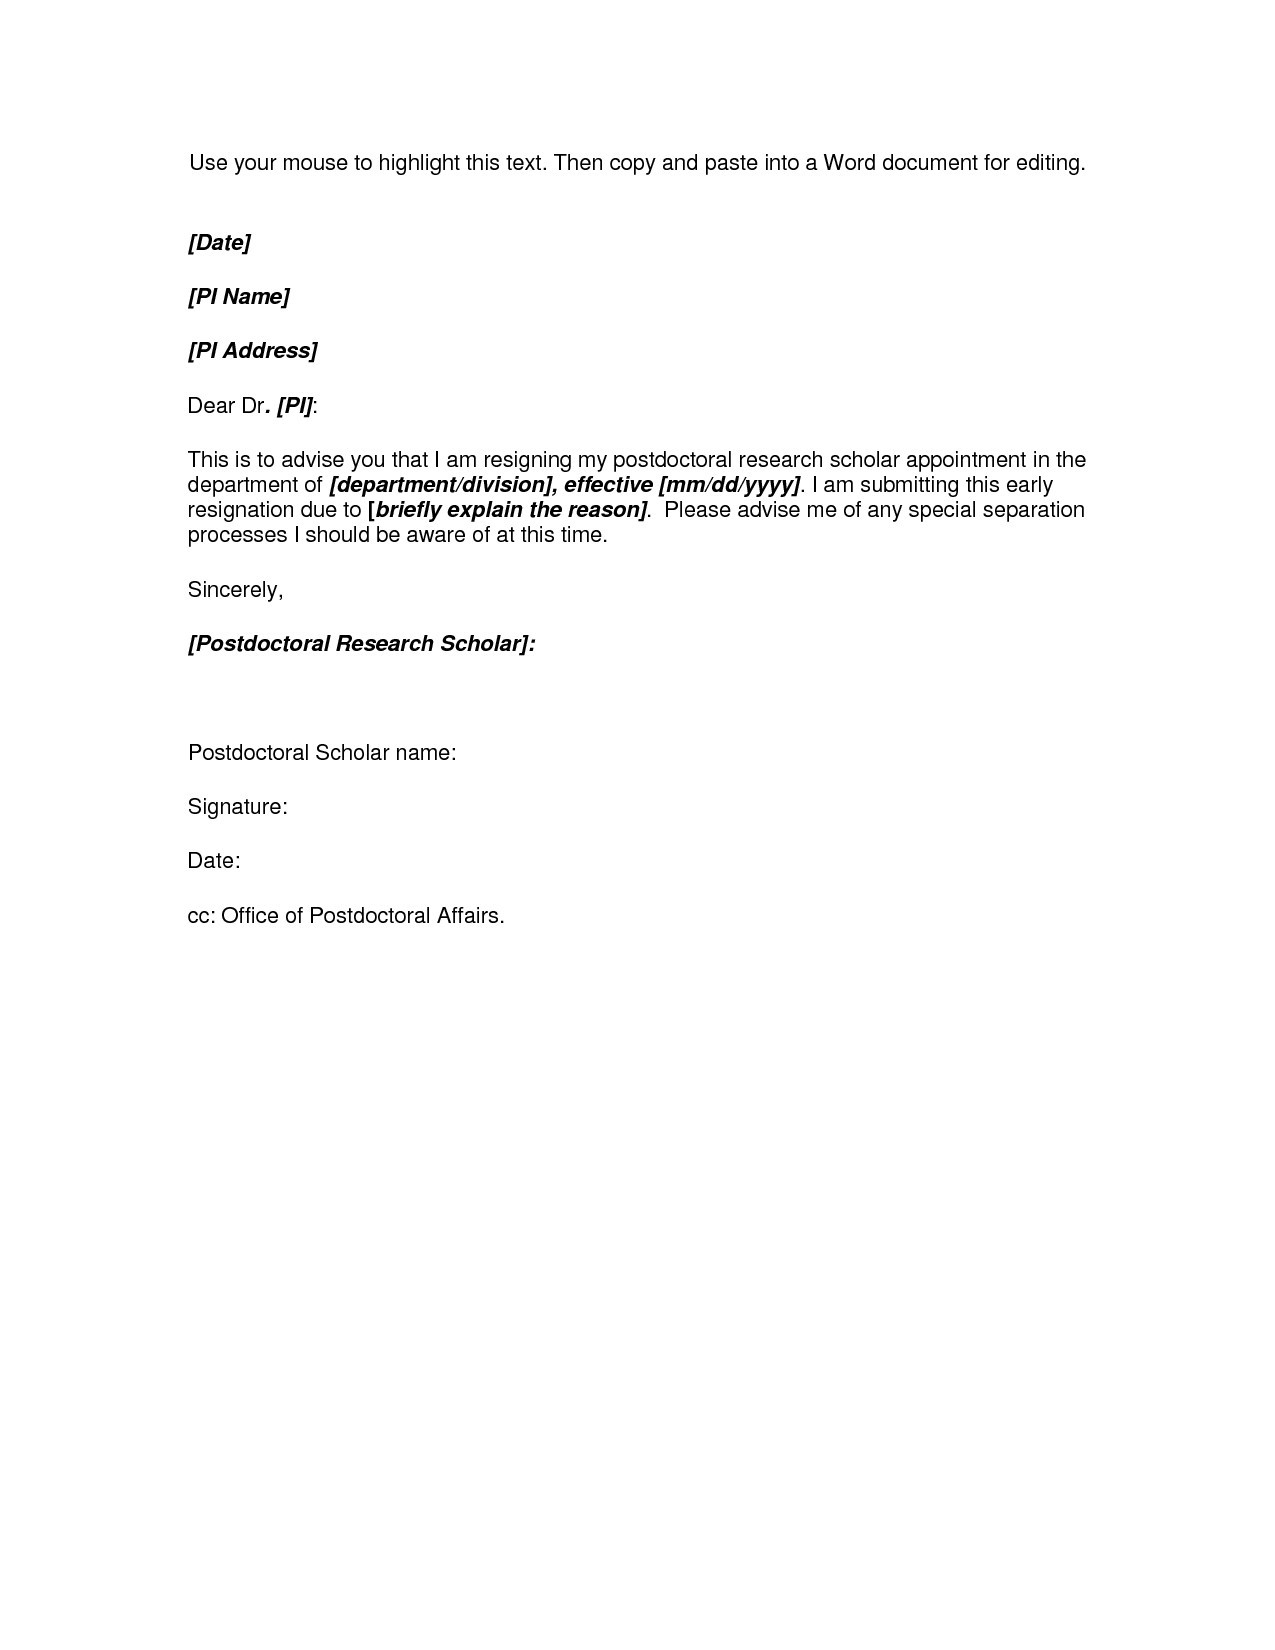 Resignation Letter Template Doc - Sample Resignation Letter Template Doc Copy Samples Resignation